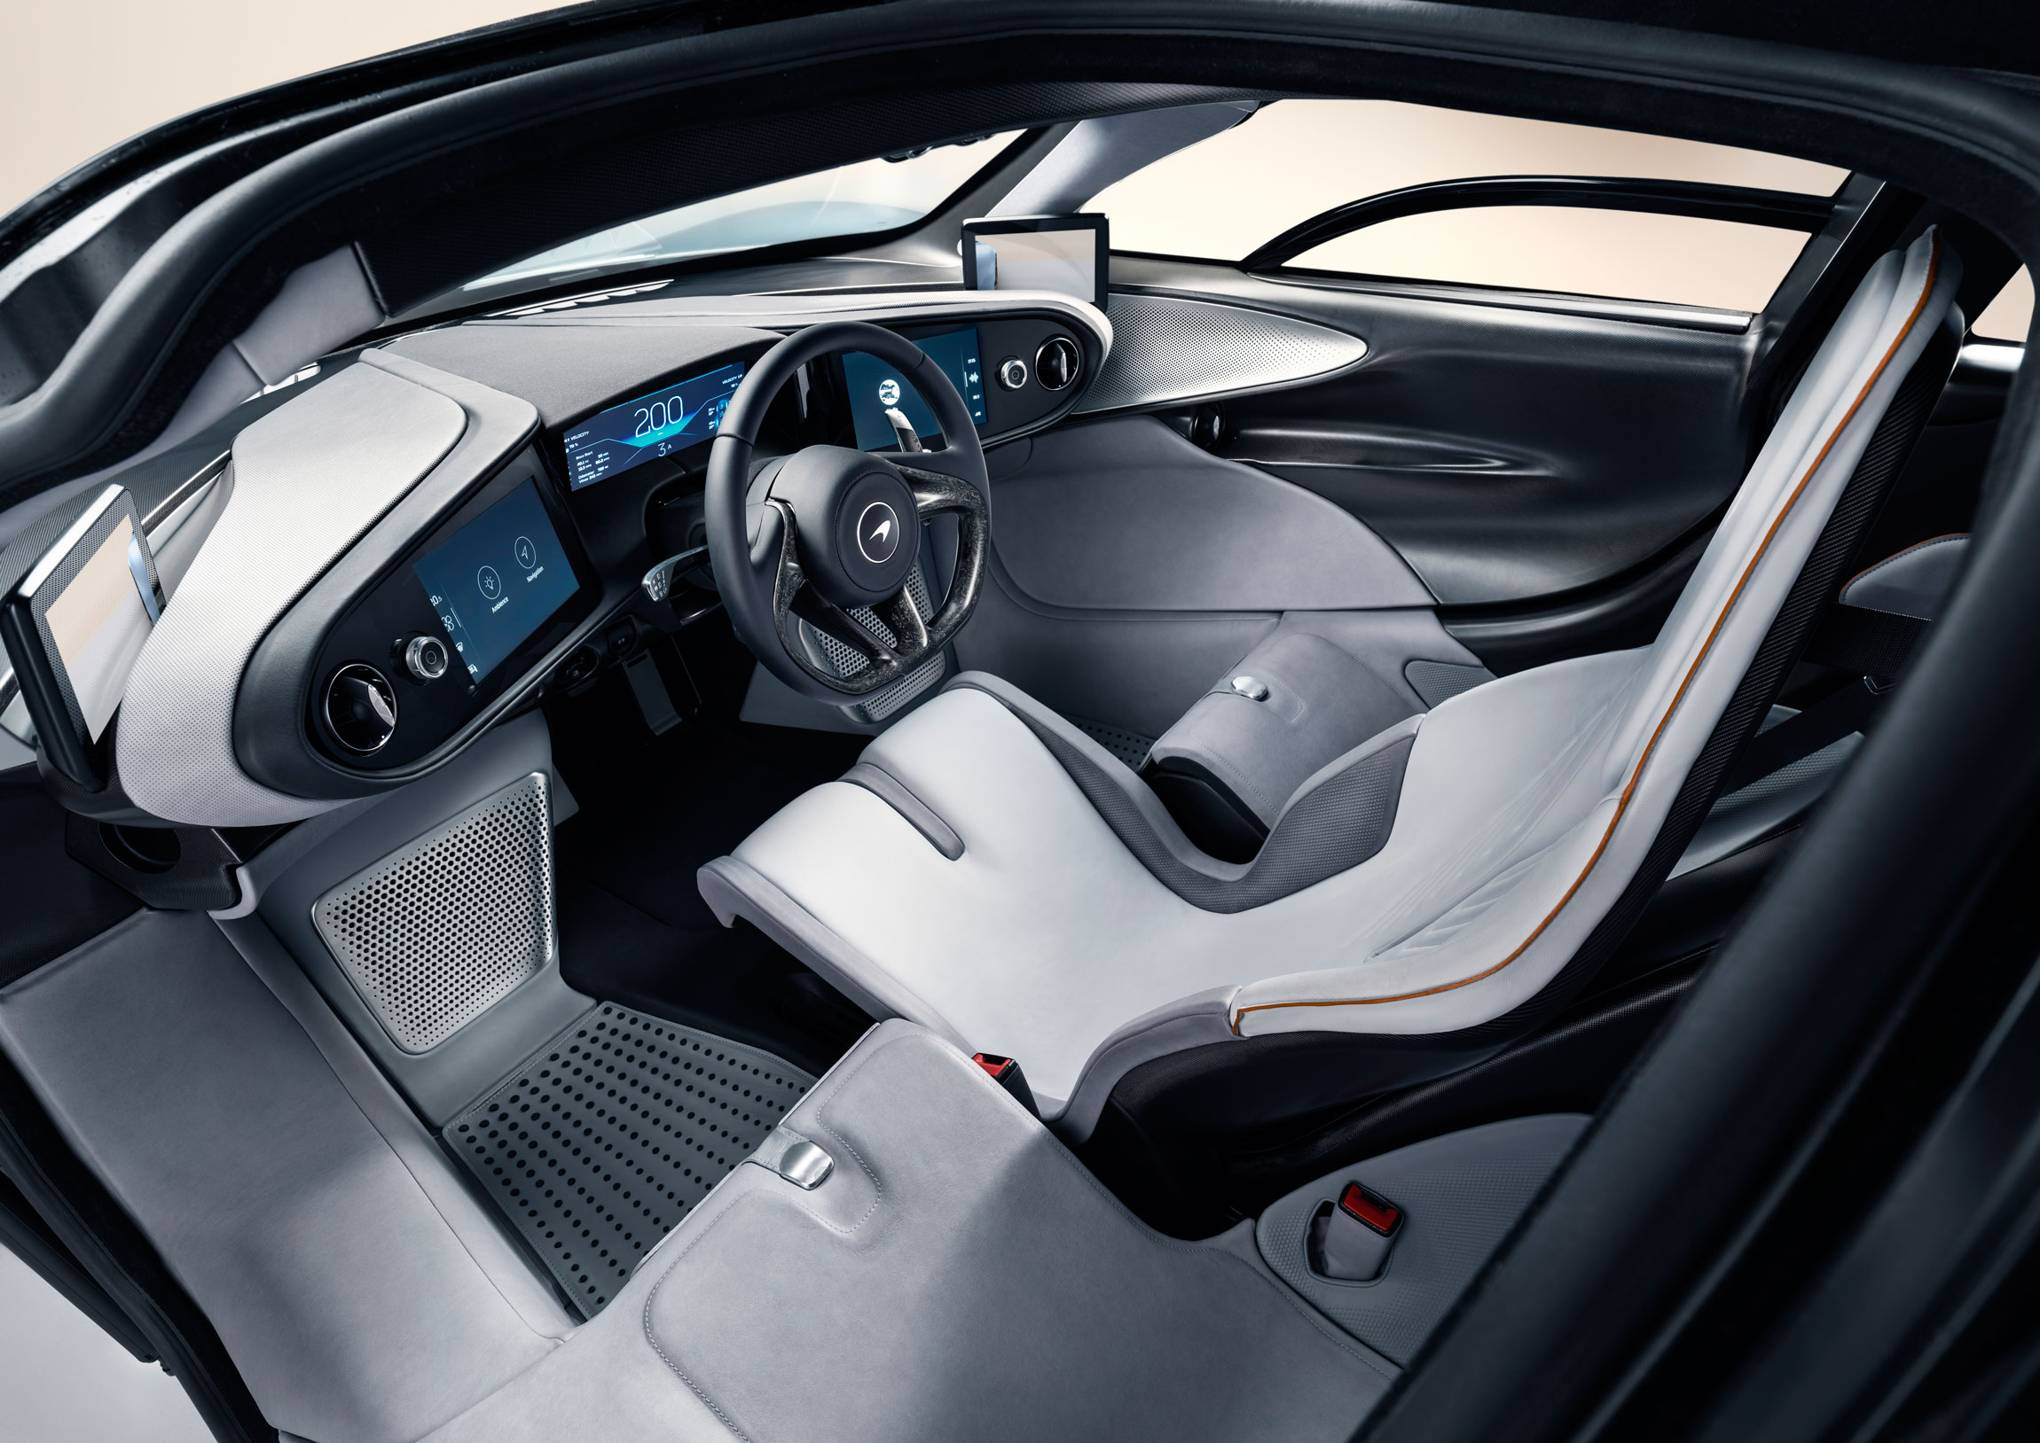 The Speedtail Is Mclarens Fastest Ever Roadcar And Its A Hybrid Go Back Gt Gallery For Automotive Electrical Circuit Symbols Wired Uk